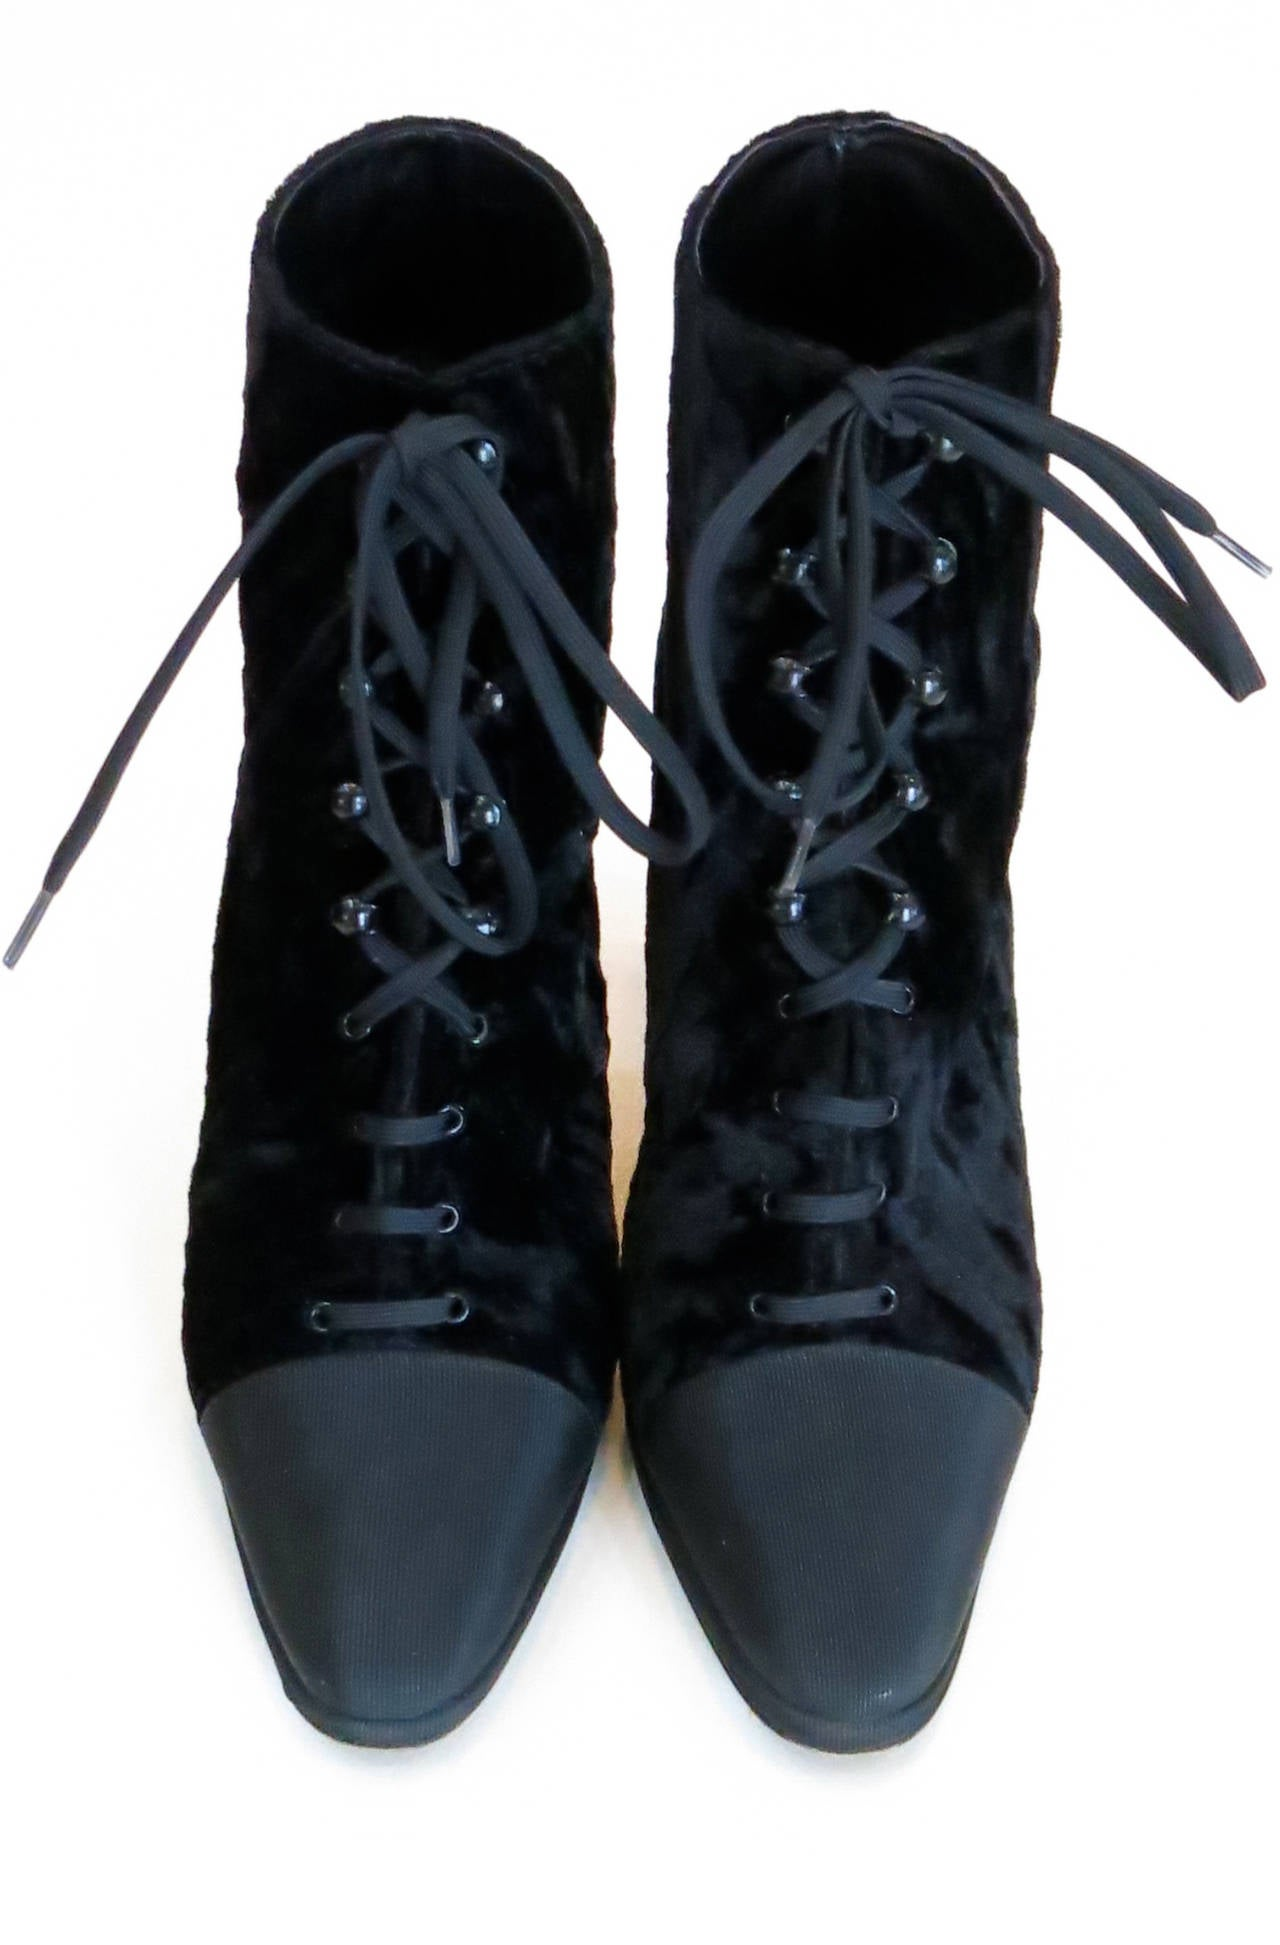 """1980s Anne Klein black velvet Victorian-style ankle boots with leather lining and sole. Label reads """"Anne Klein Couture"""" and sole reads """"Made in Italy"""". Size 6 1/2 M.  *Please contact dealer prior to purchase for white glove shipping options."""